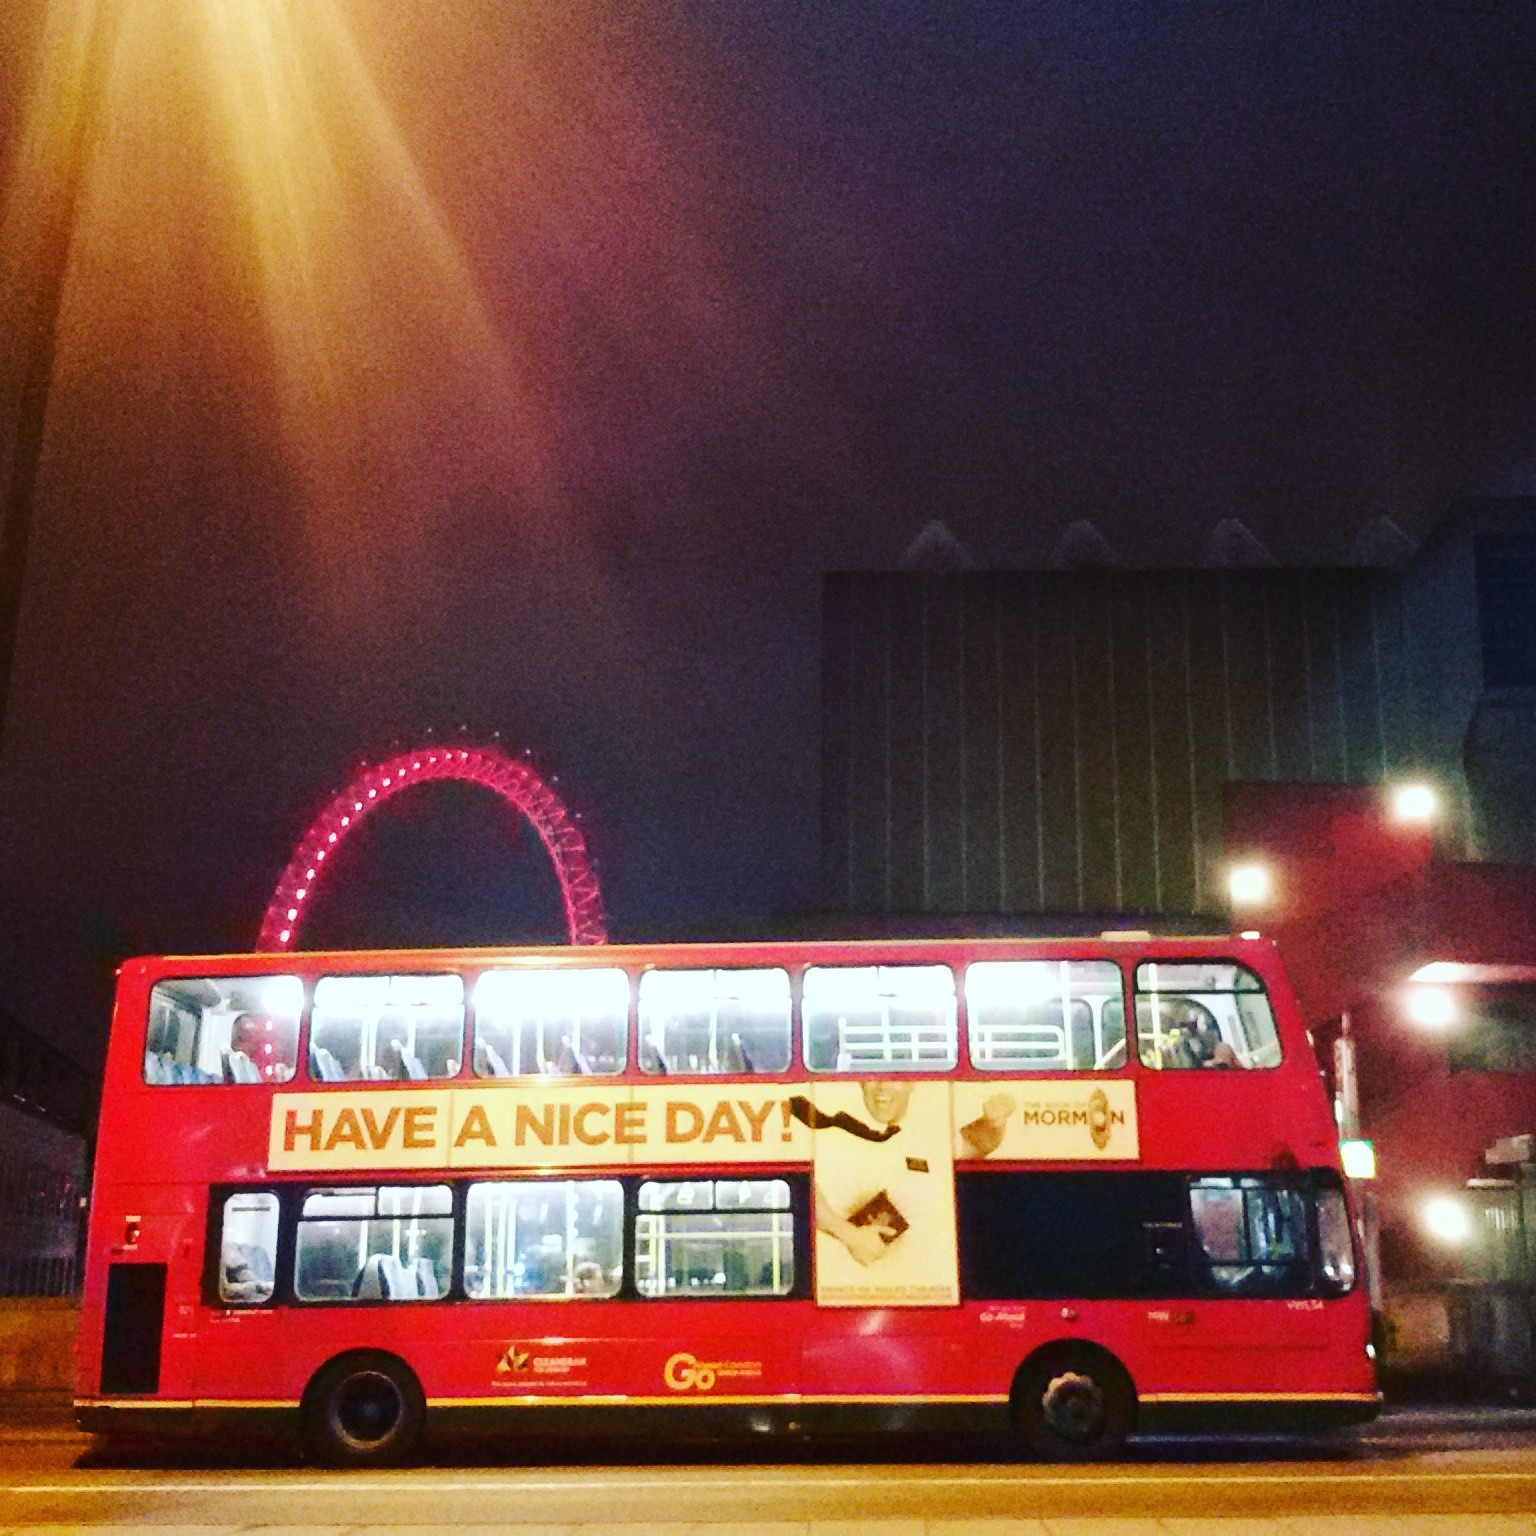 london bus by erica vagliengo